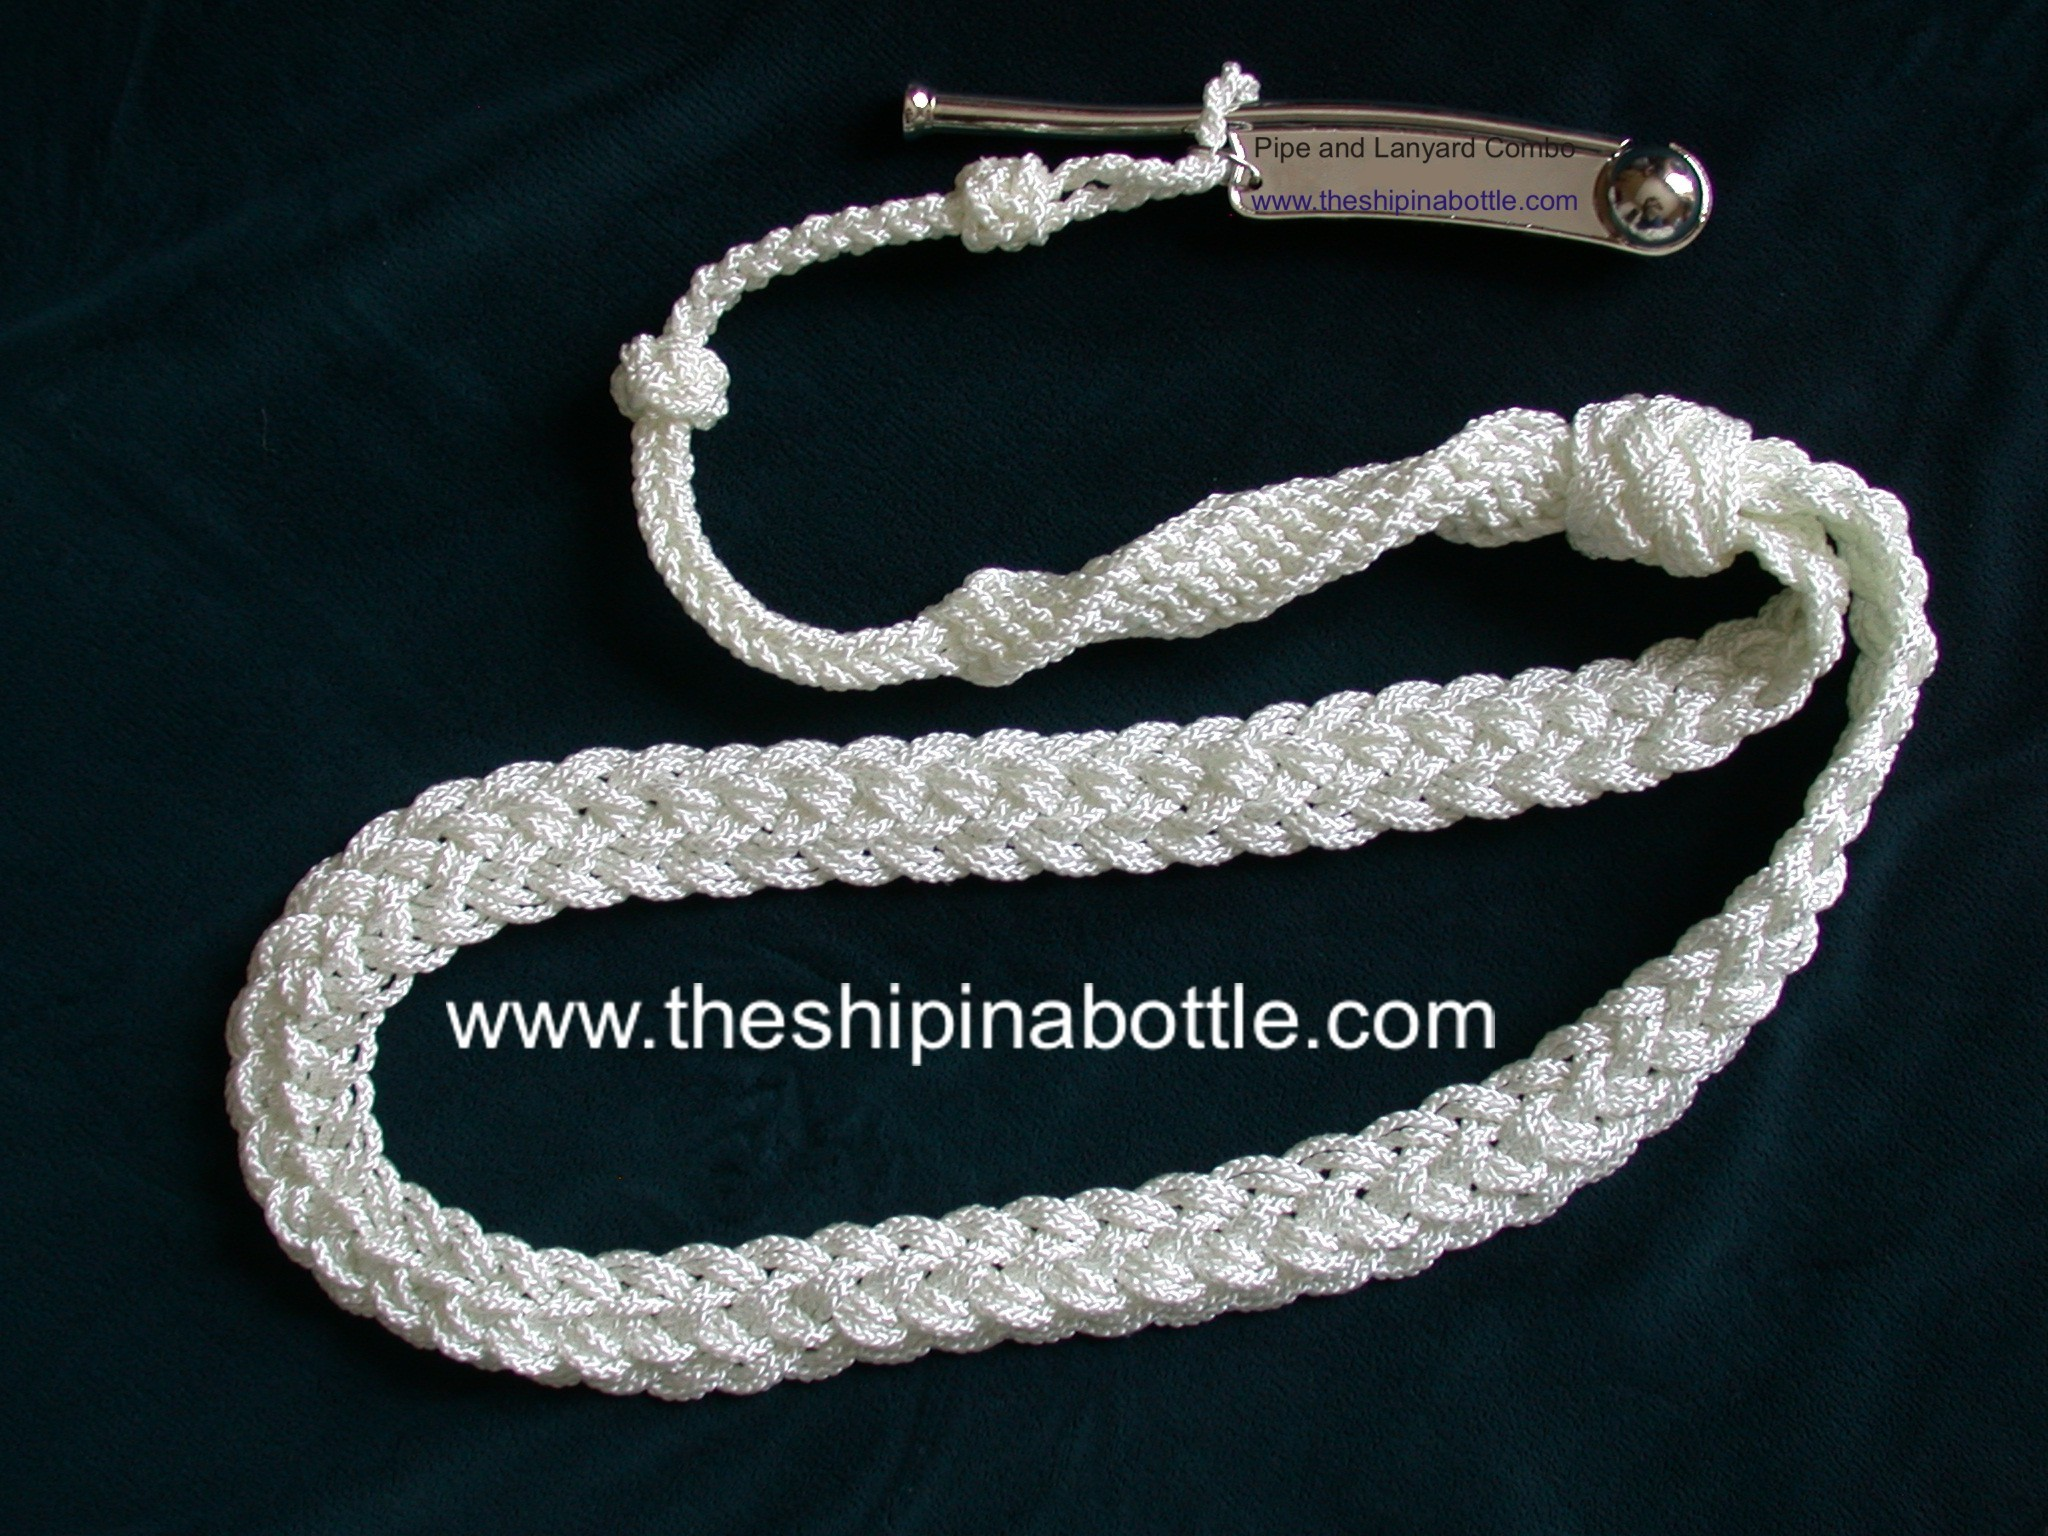 Boatswain's Pipe with Lanyard